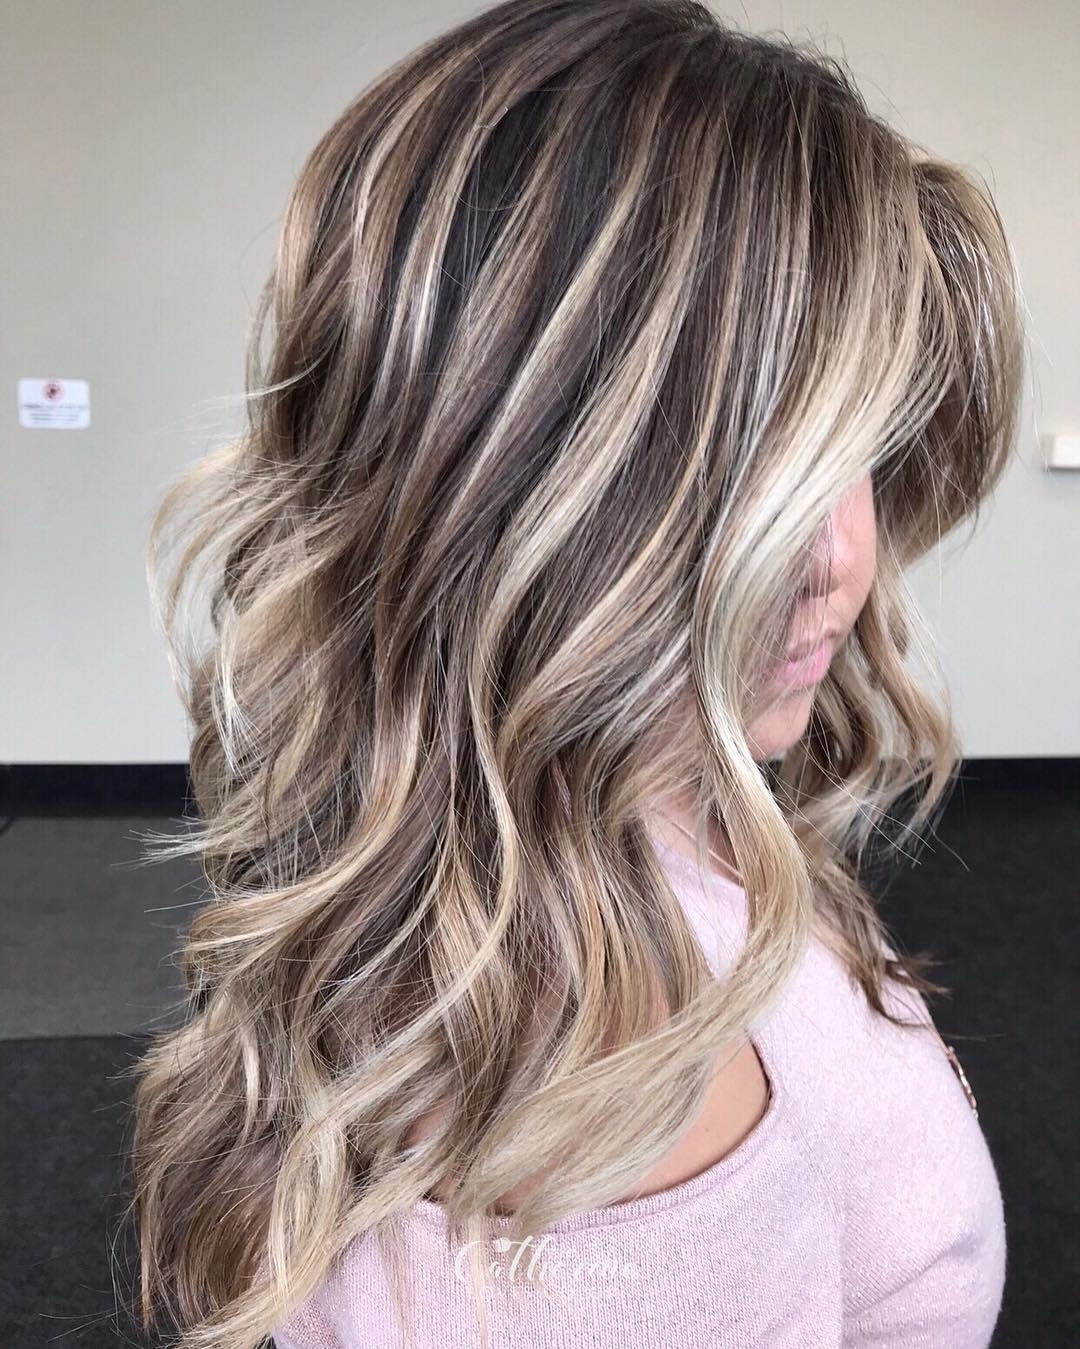 20 Caramel Highlights For Dark Brown Hair 2021 – Short For Black Hairstyles With Brown Highlights (View 3 of 20)